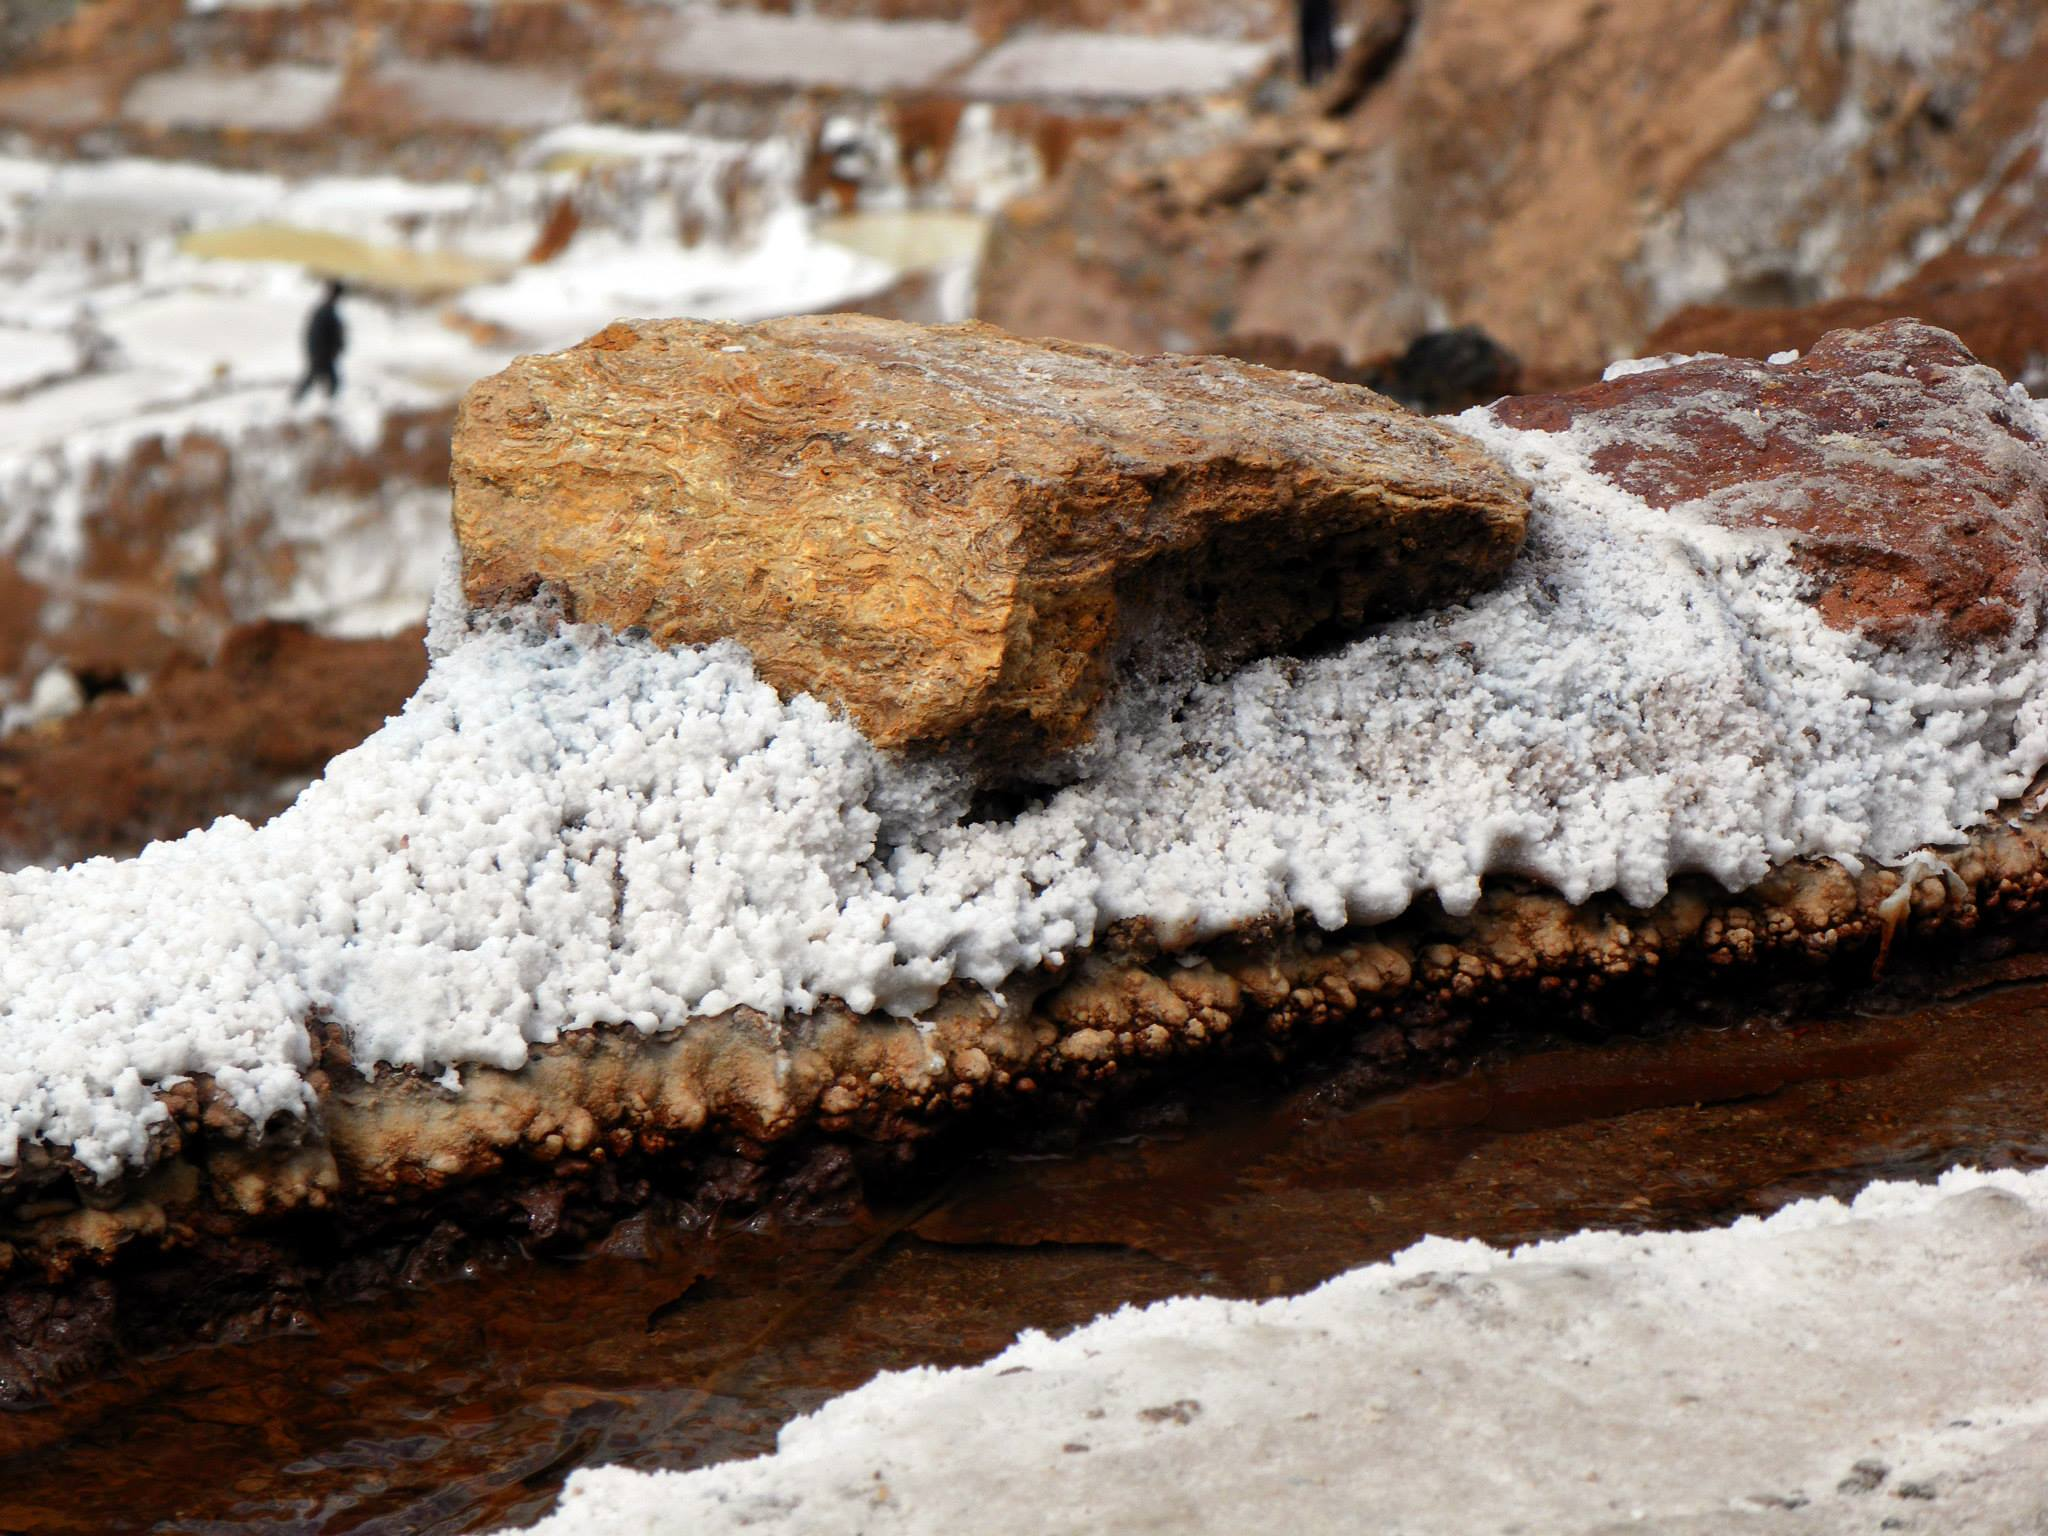 Close up of salt crystals forming on the rock in the Maras salt pans.